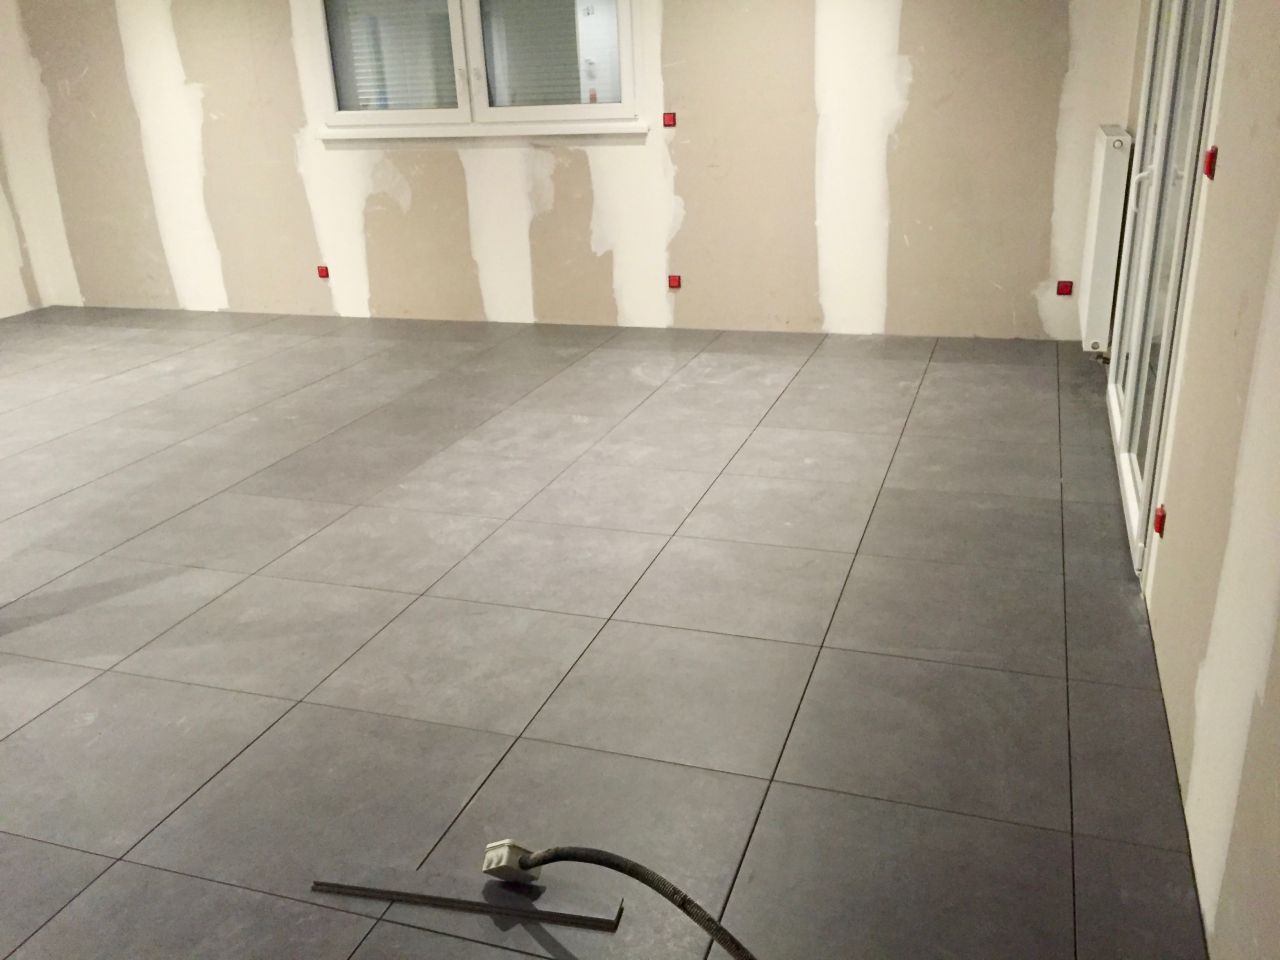 D but carrelage peinture parquet plinthes phase 1 for Carrelage du midi